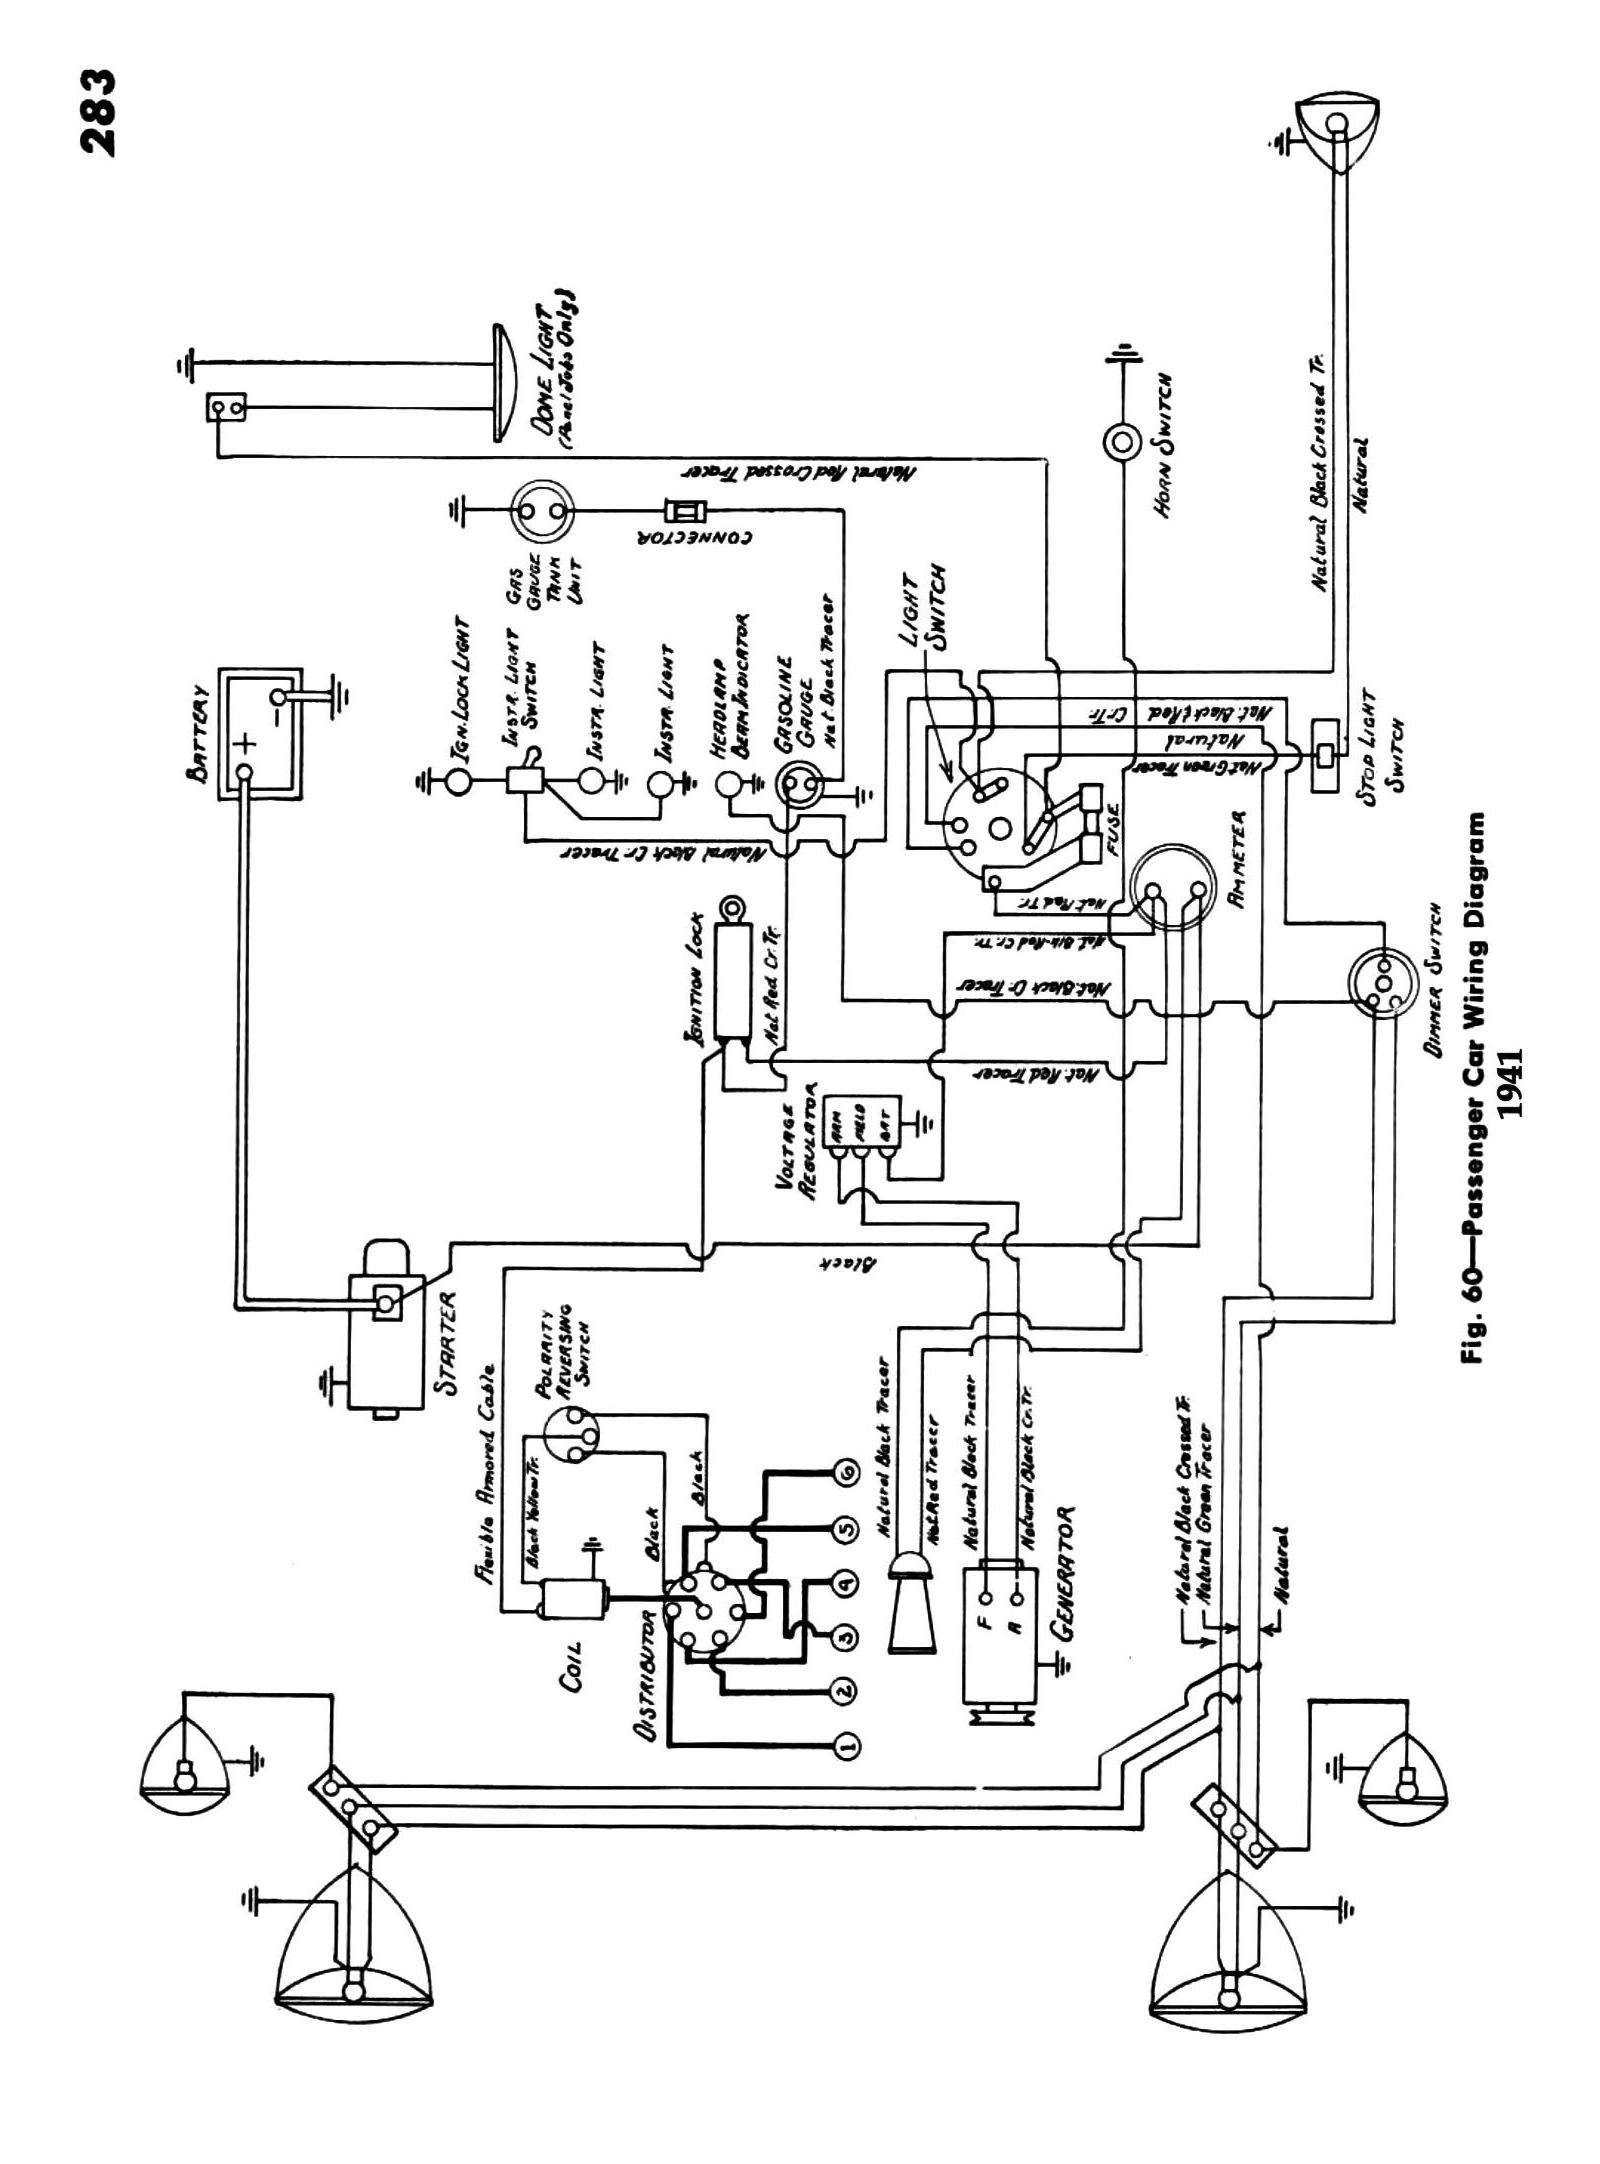 hight resolution of 1941 chevy wiring harness everything about wiring diagram u2022 1978 chevy truck wiring diagram 1941 chevy pickup wiring diagram